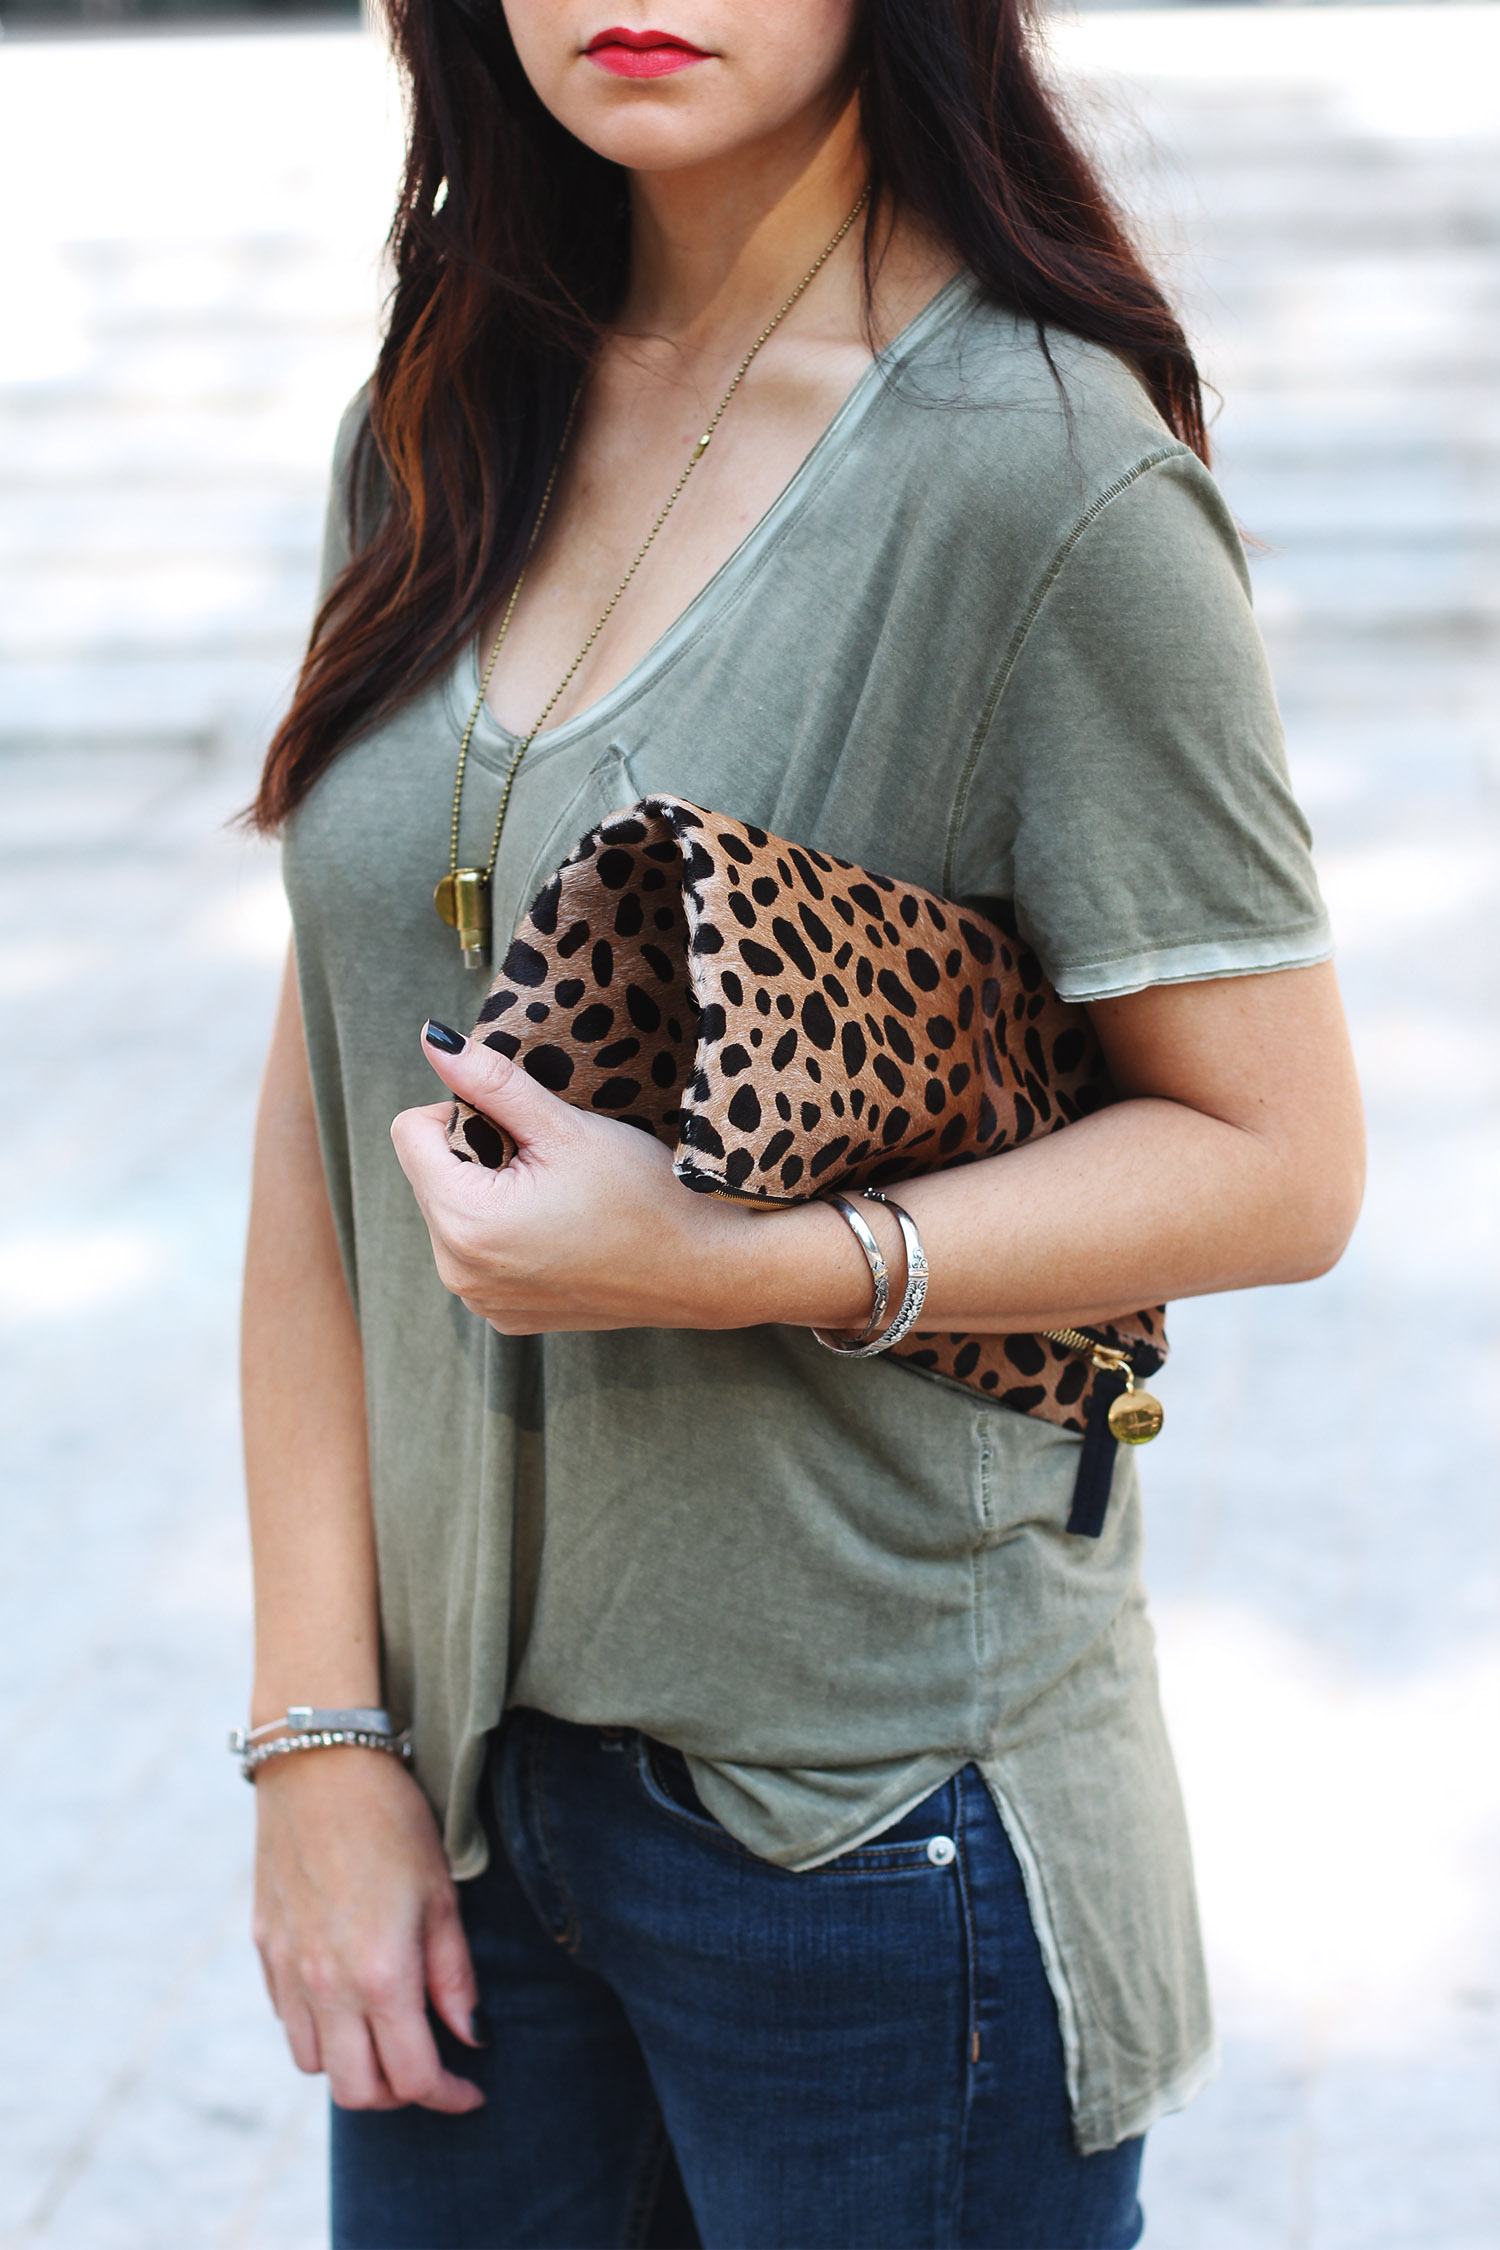 Free People T-Shirt, Clare V. Foldover Clutch